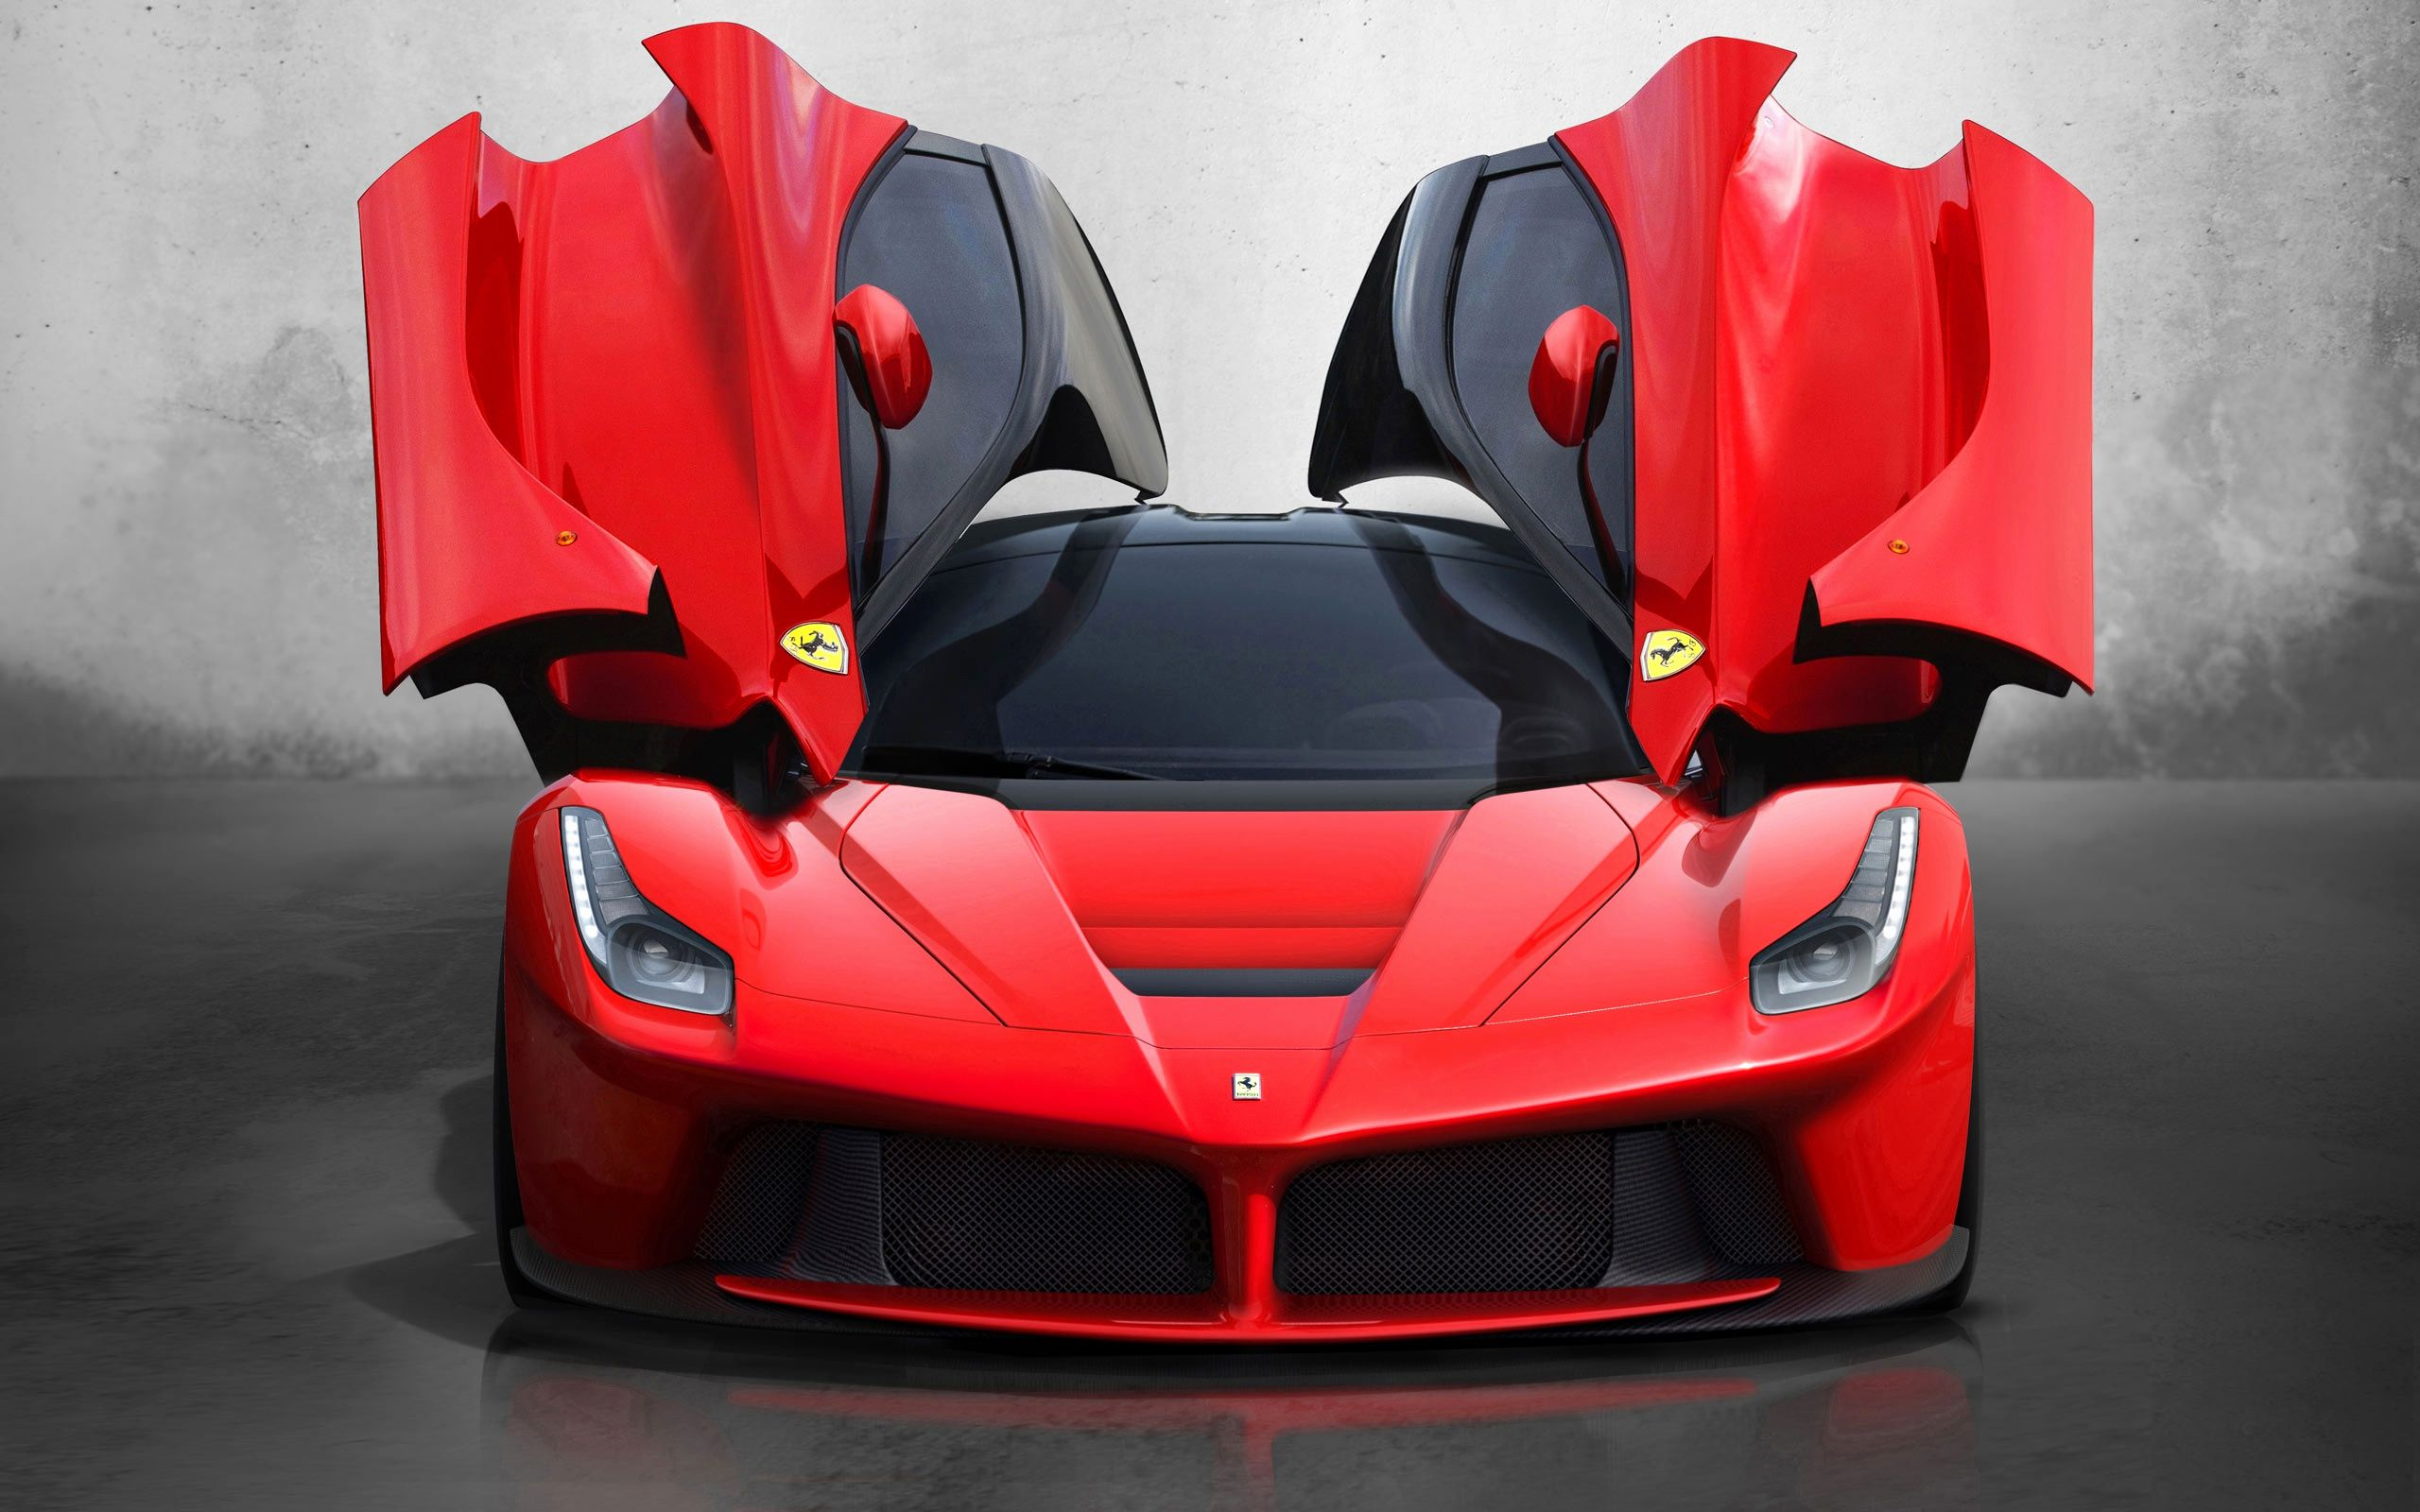 Cool Ferrari Cars Wallpapers Top Free Cool Ferrari Cars